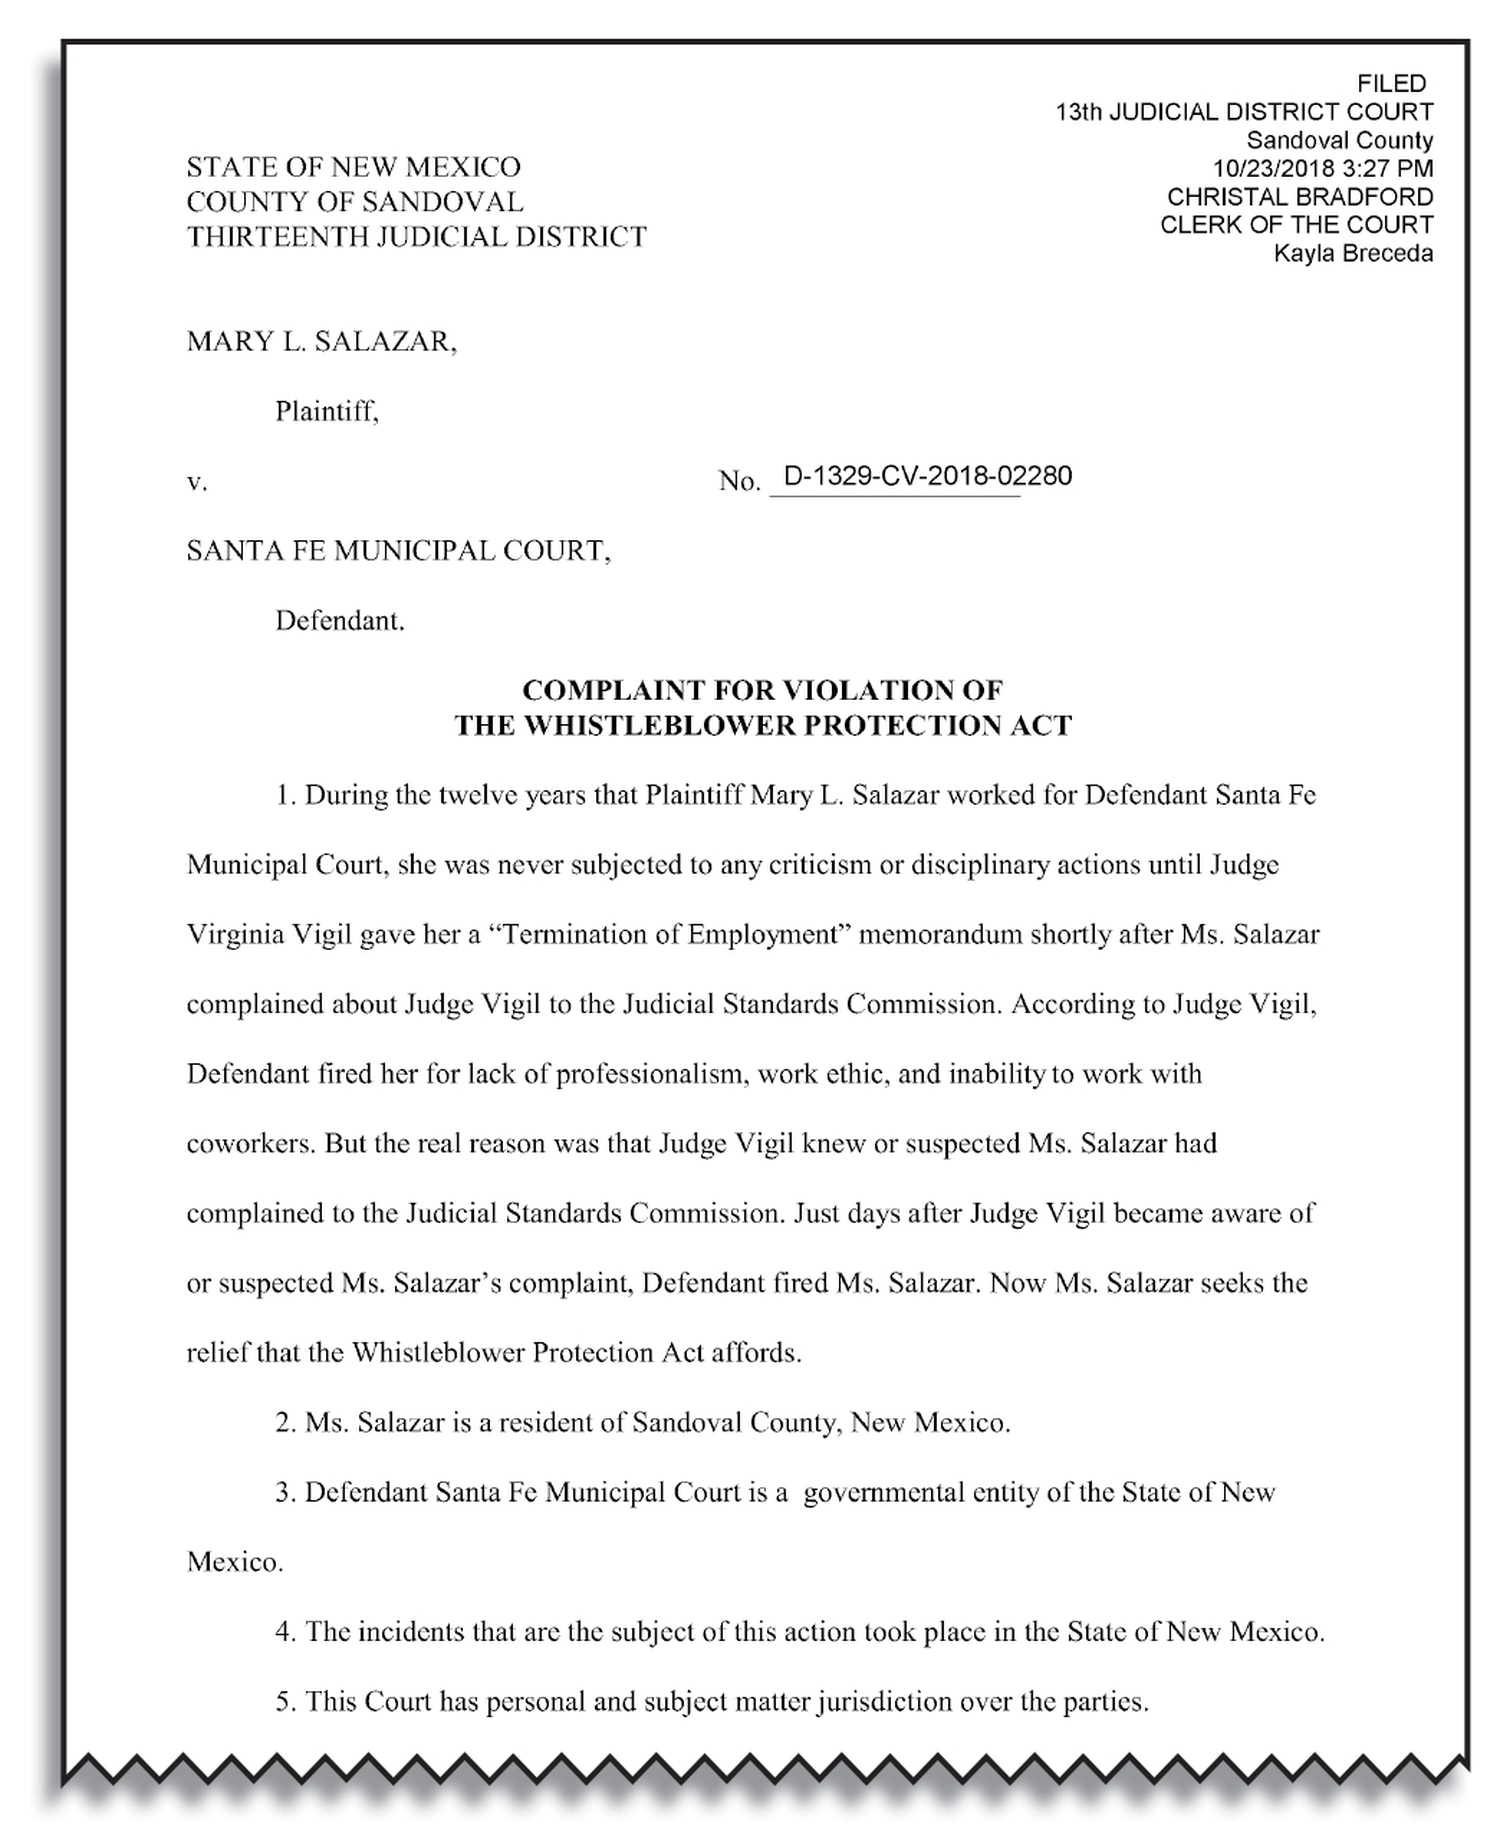 Judge Virginia Vigil's lawyer has not yet responded to the complaint filed in District Court last October